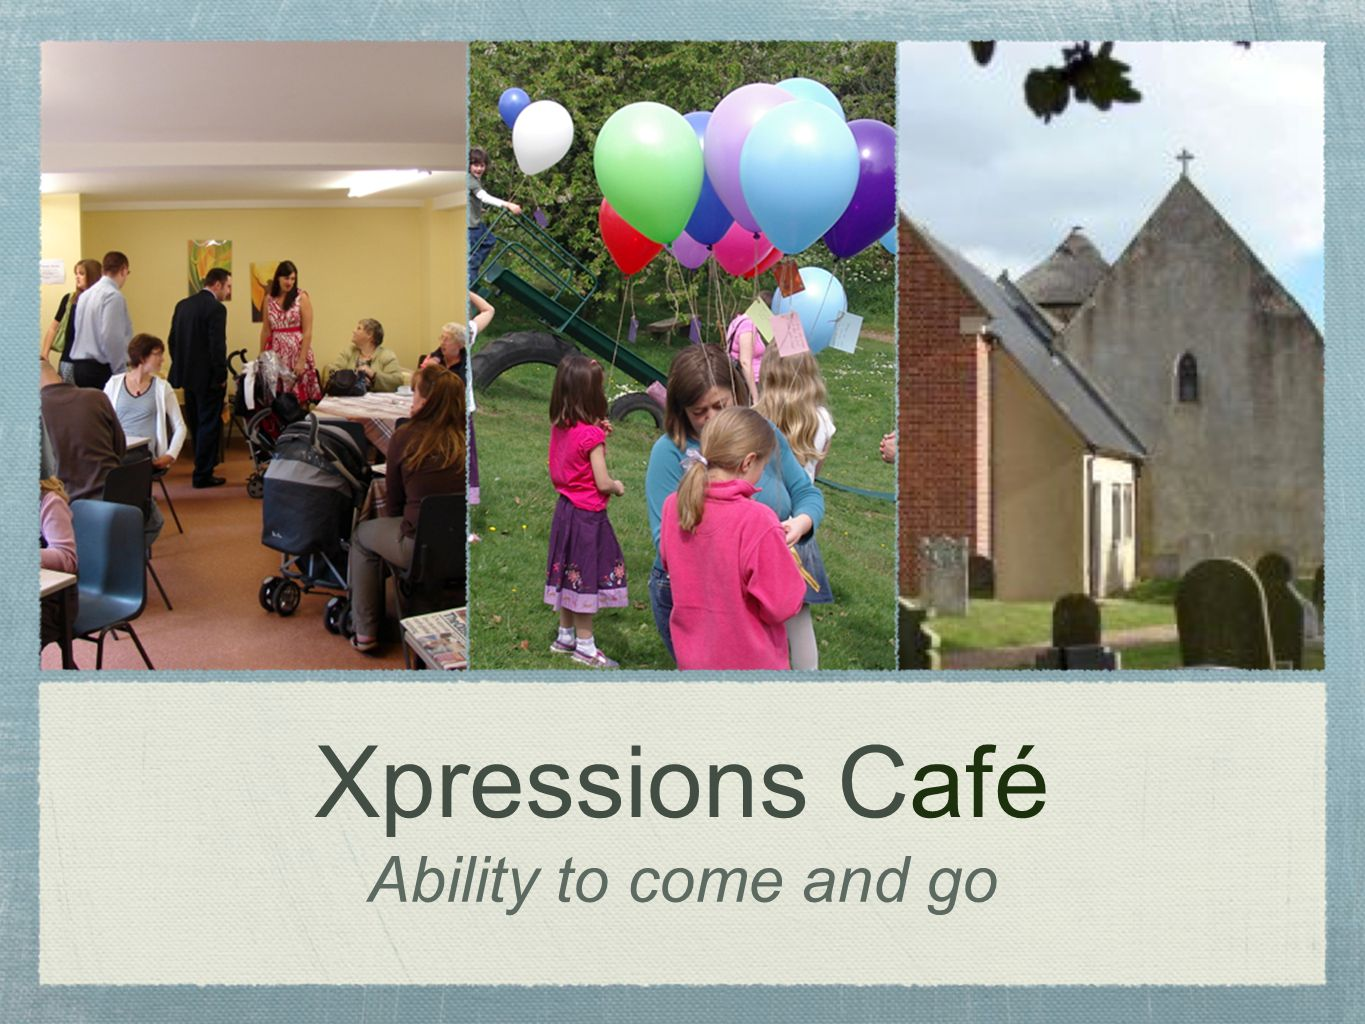 Xpressions Café Ability to come and go